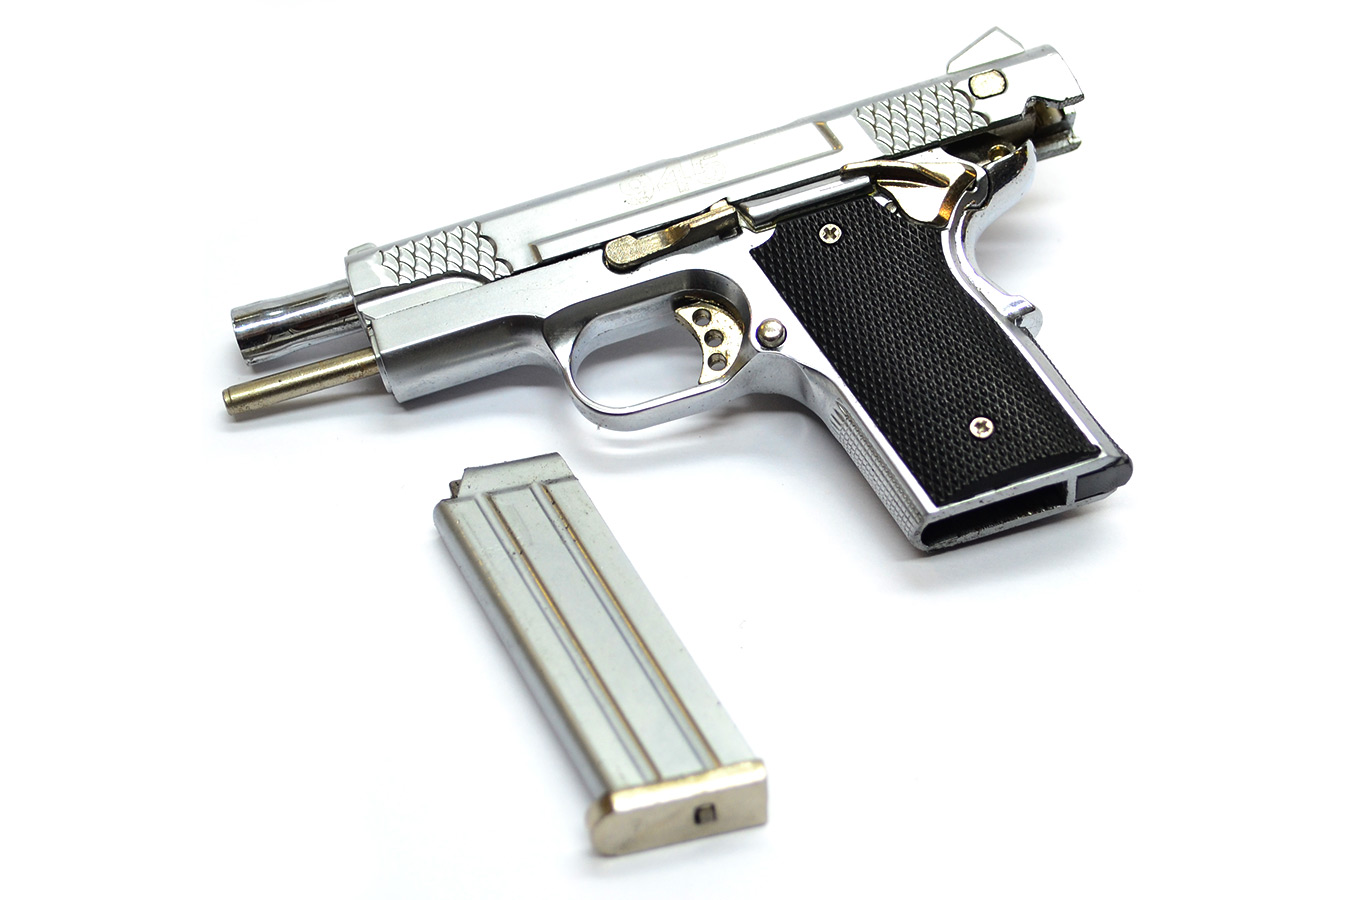 Model Smith & Wesson Mod 945 pistol on a scale of 1: 2